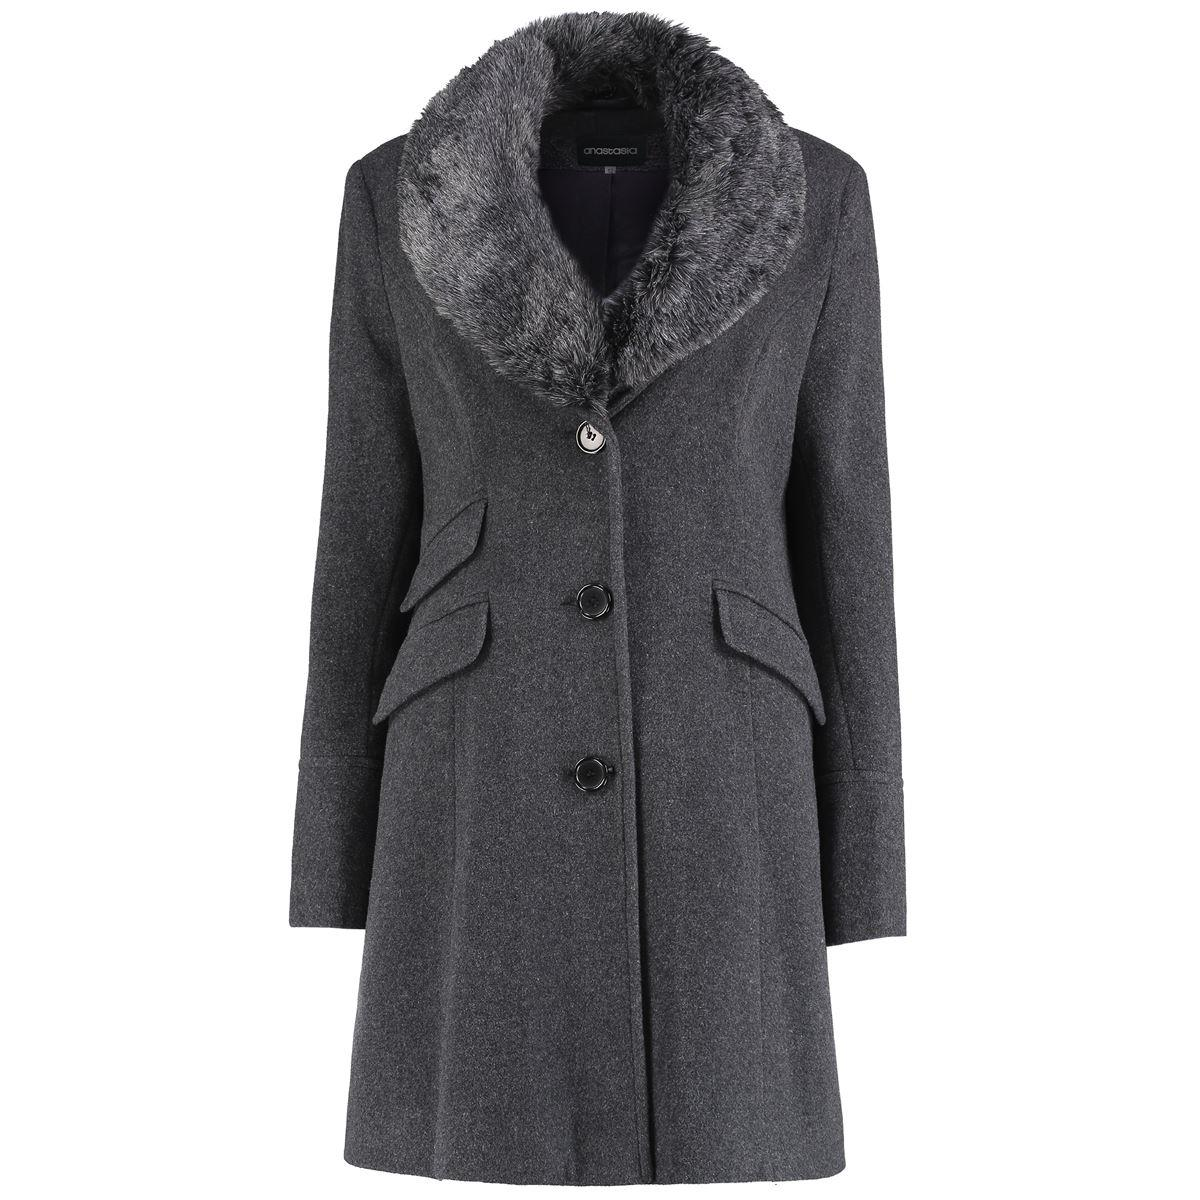 De La Creme - Women's Fitted Winter Coat